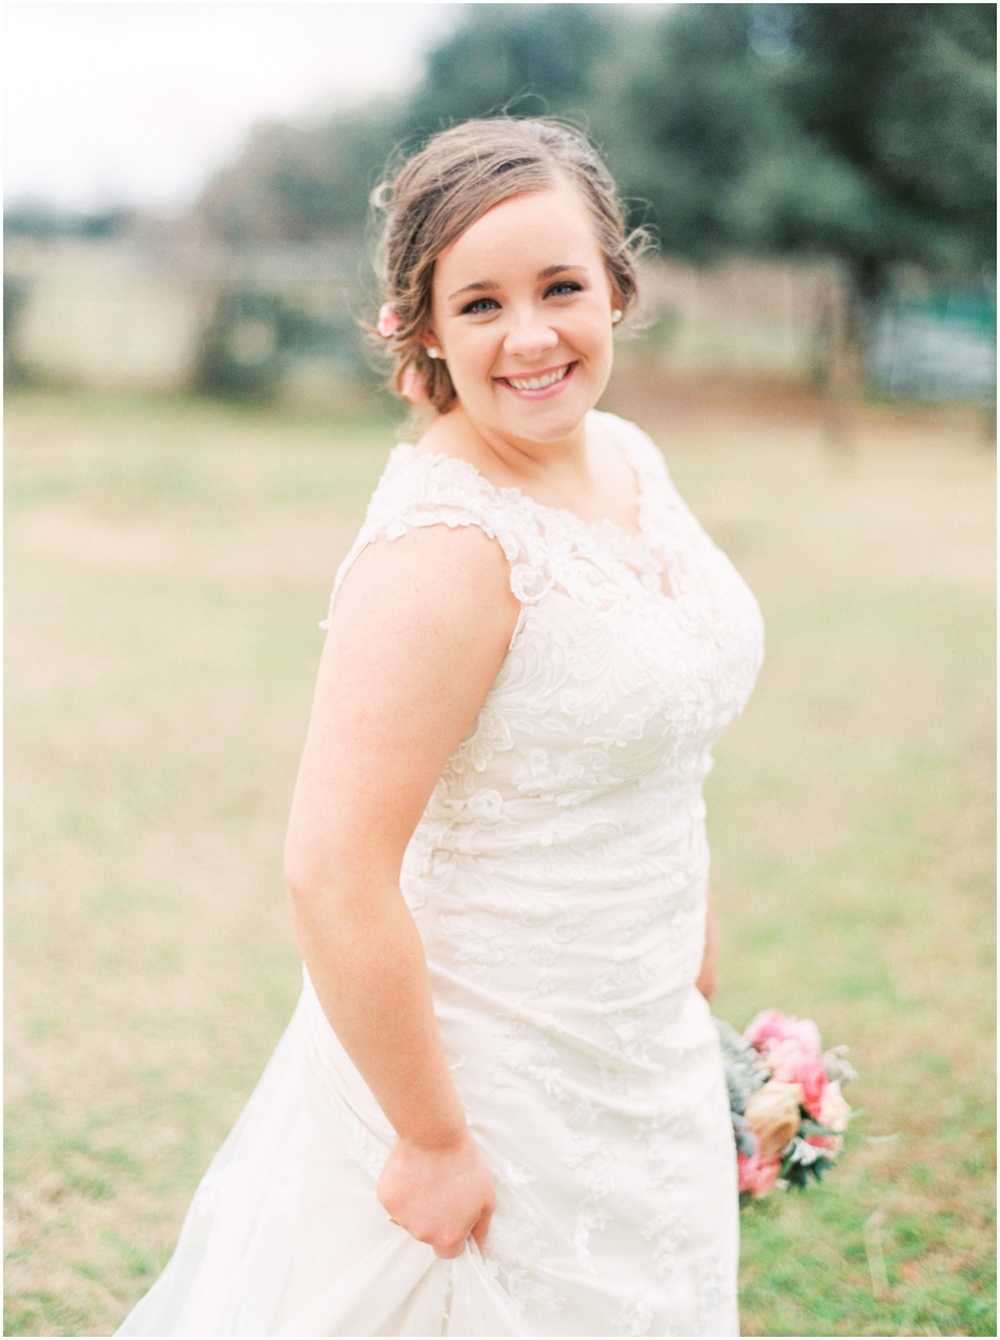 Sarah Best Photography - Claire's Bridals - The Amish Barn at Edge-19_STP.jpg